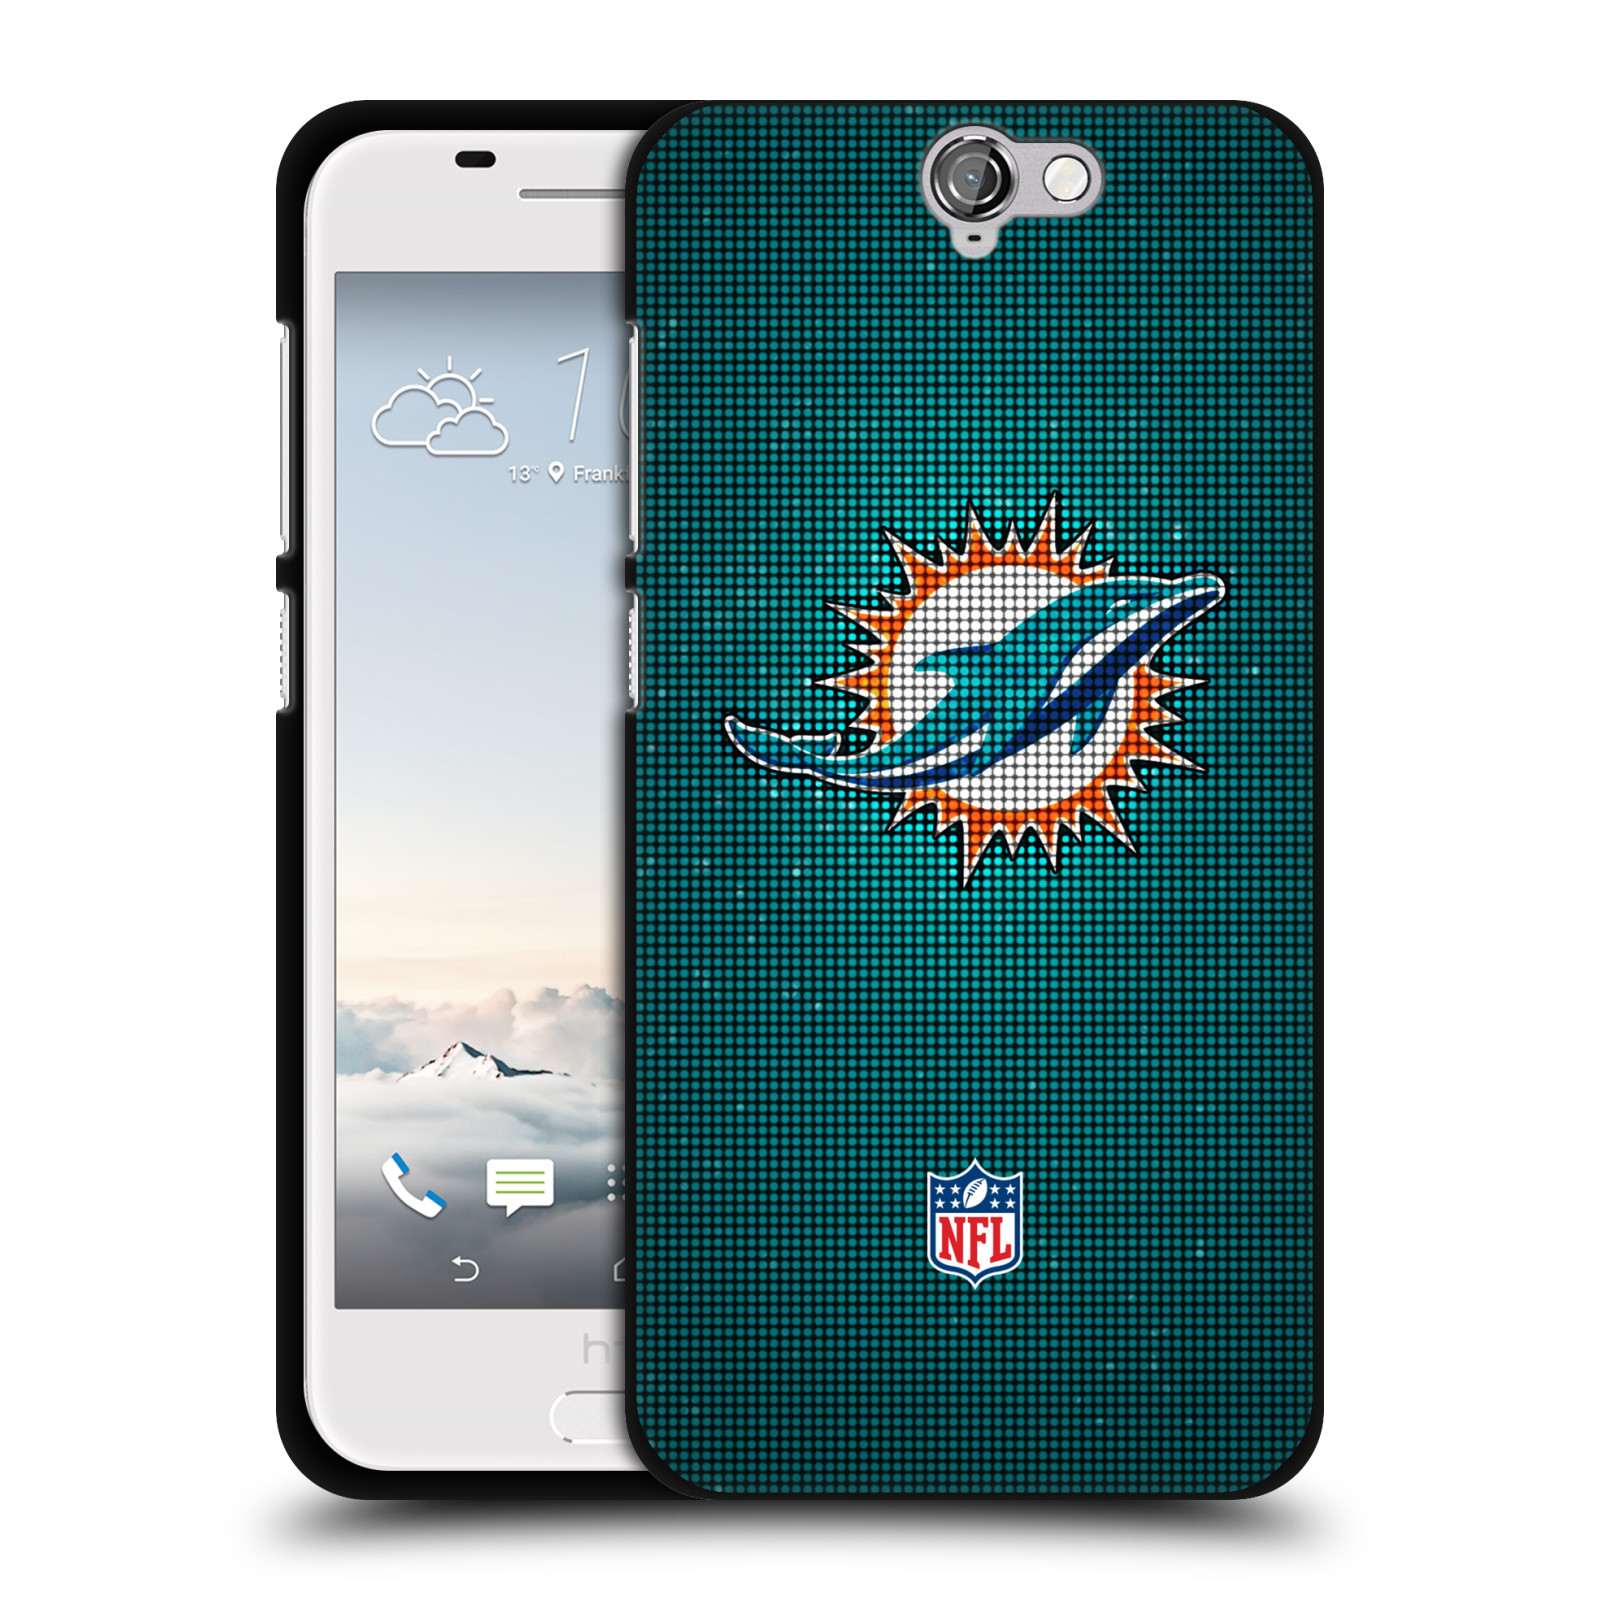 OFFICIAL-NFL-2017-18-MIAMI-DOLPHINS-BLACK-SOFT-GEL-CASE-FOR-HTC-PHONES